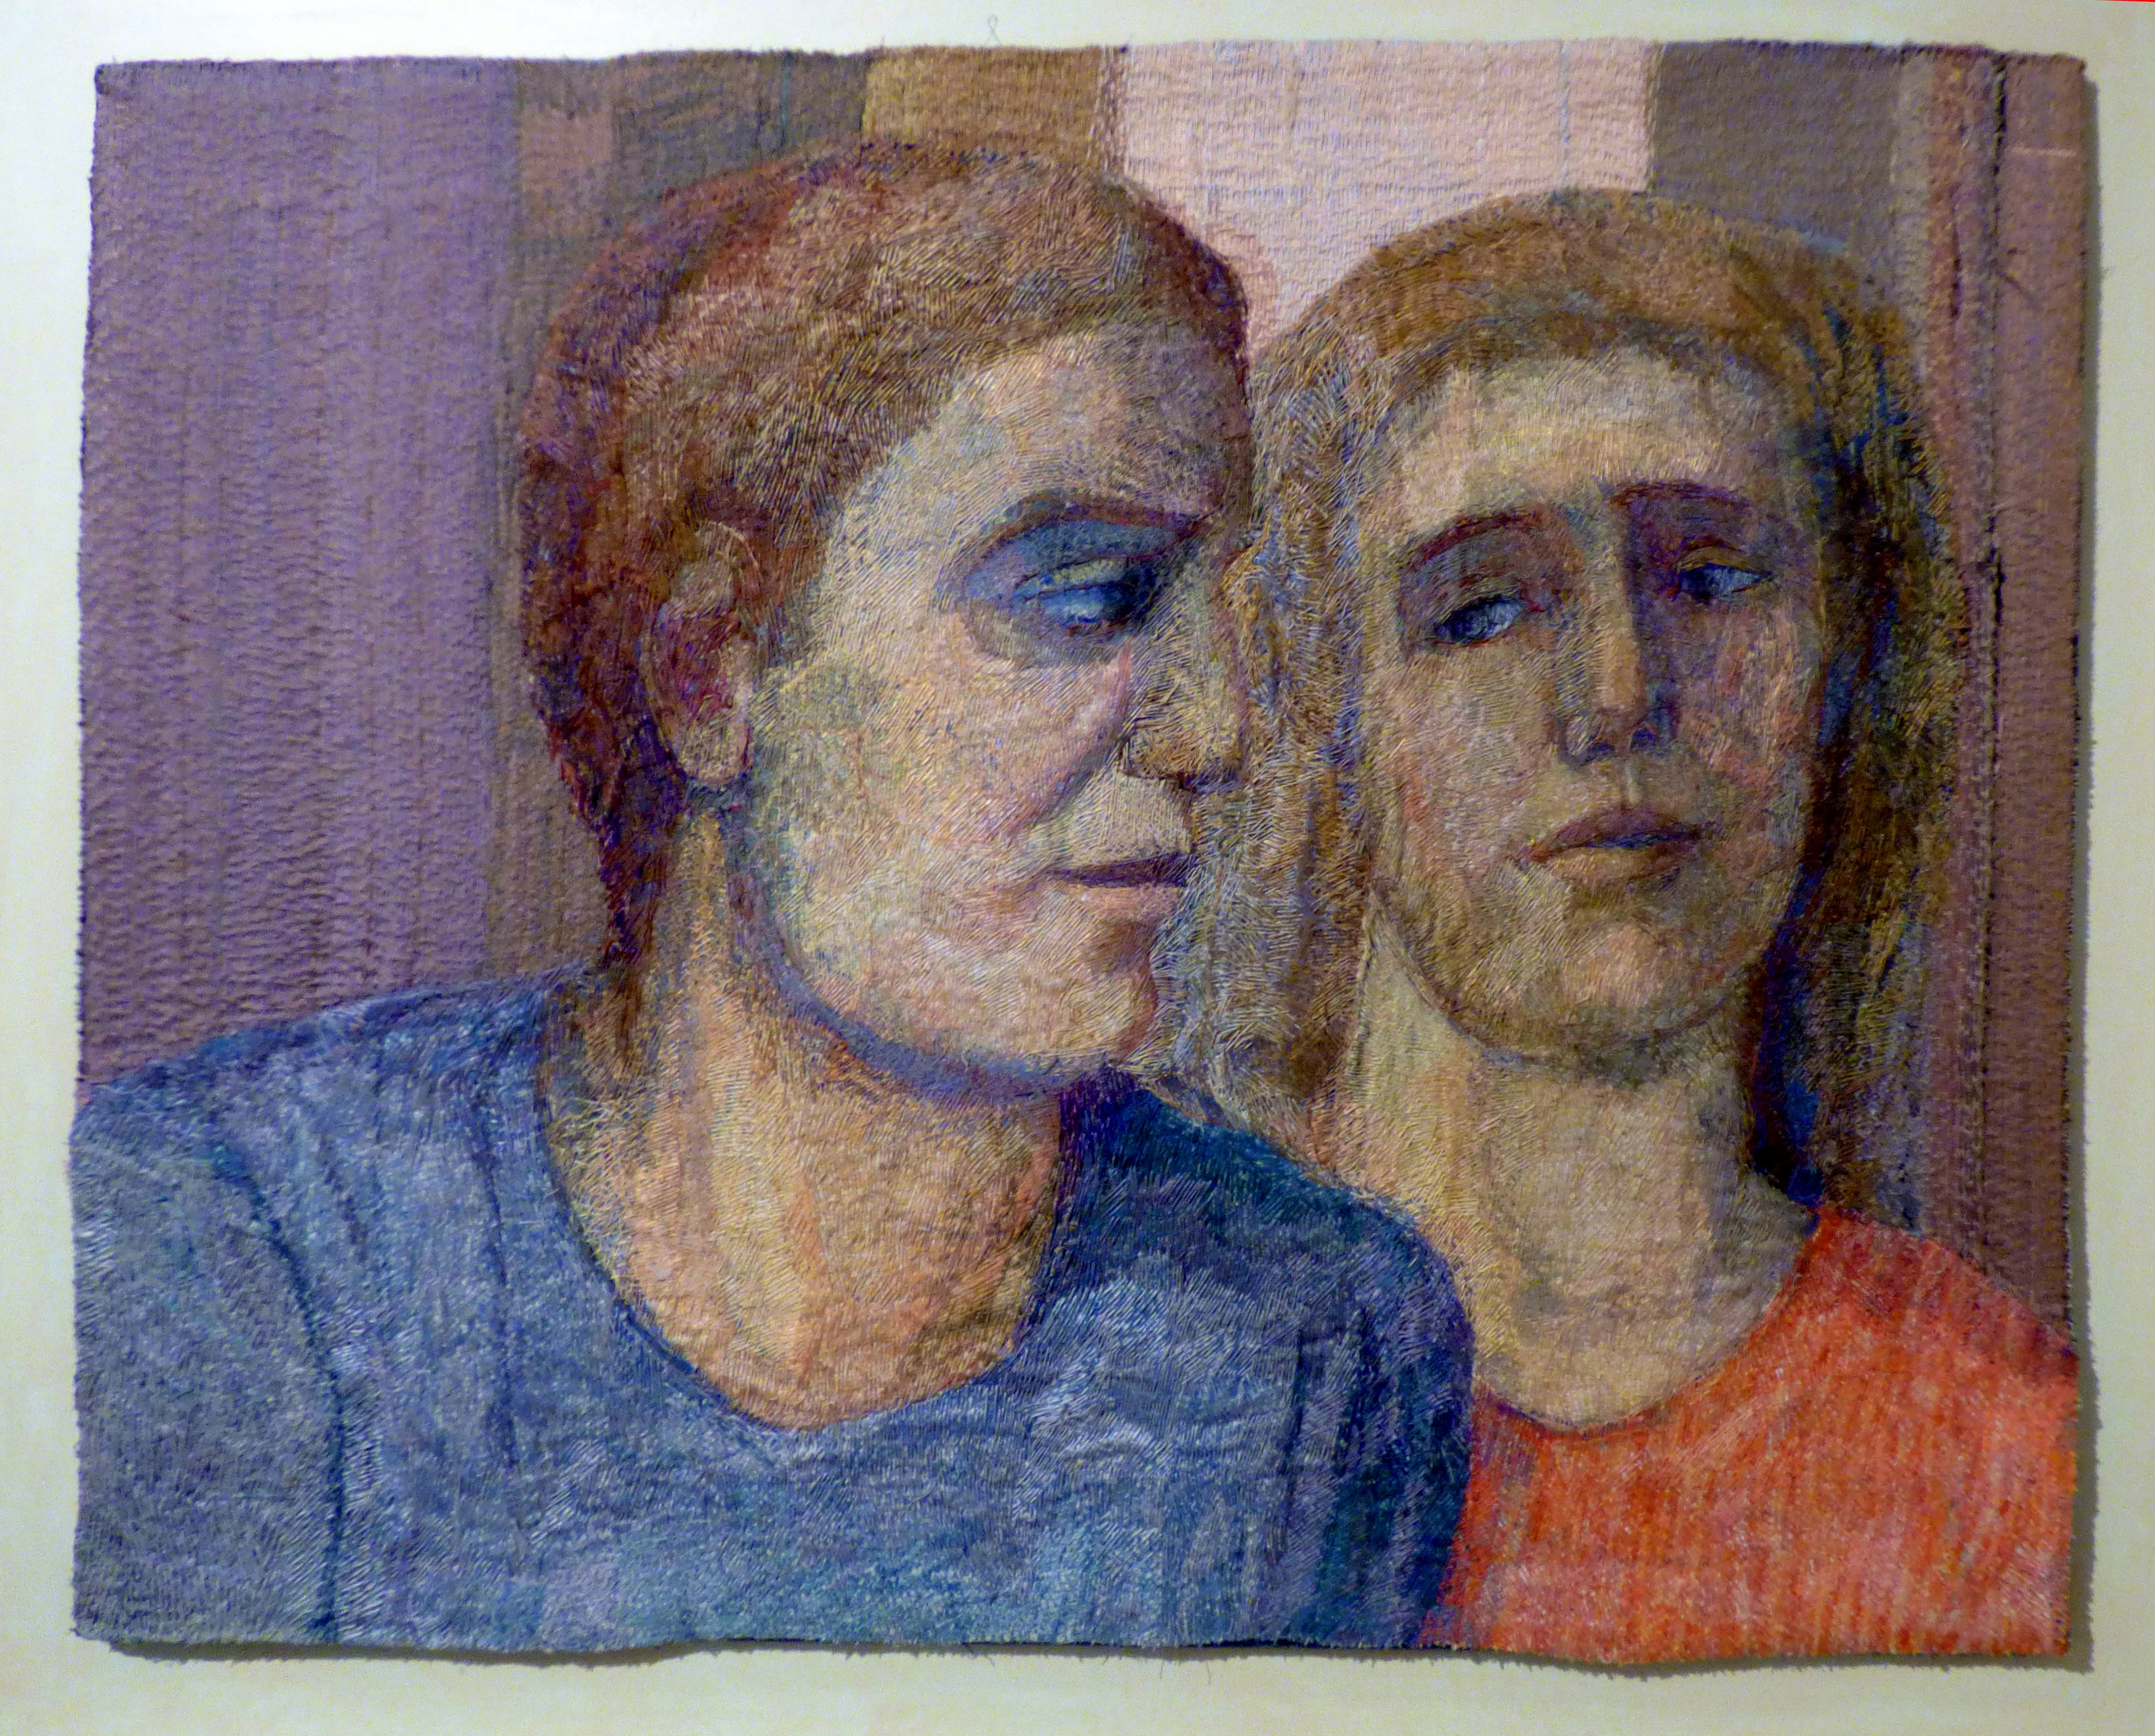 ENCOUNTER by Audrey Walker, stitched textile by Audrey Walker, 1998